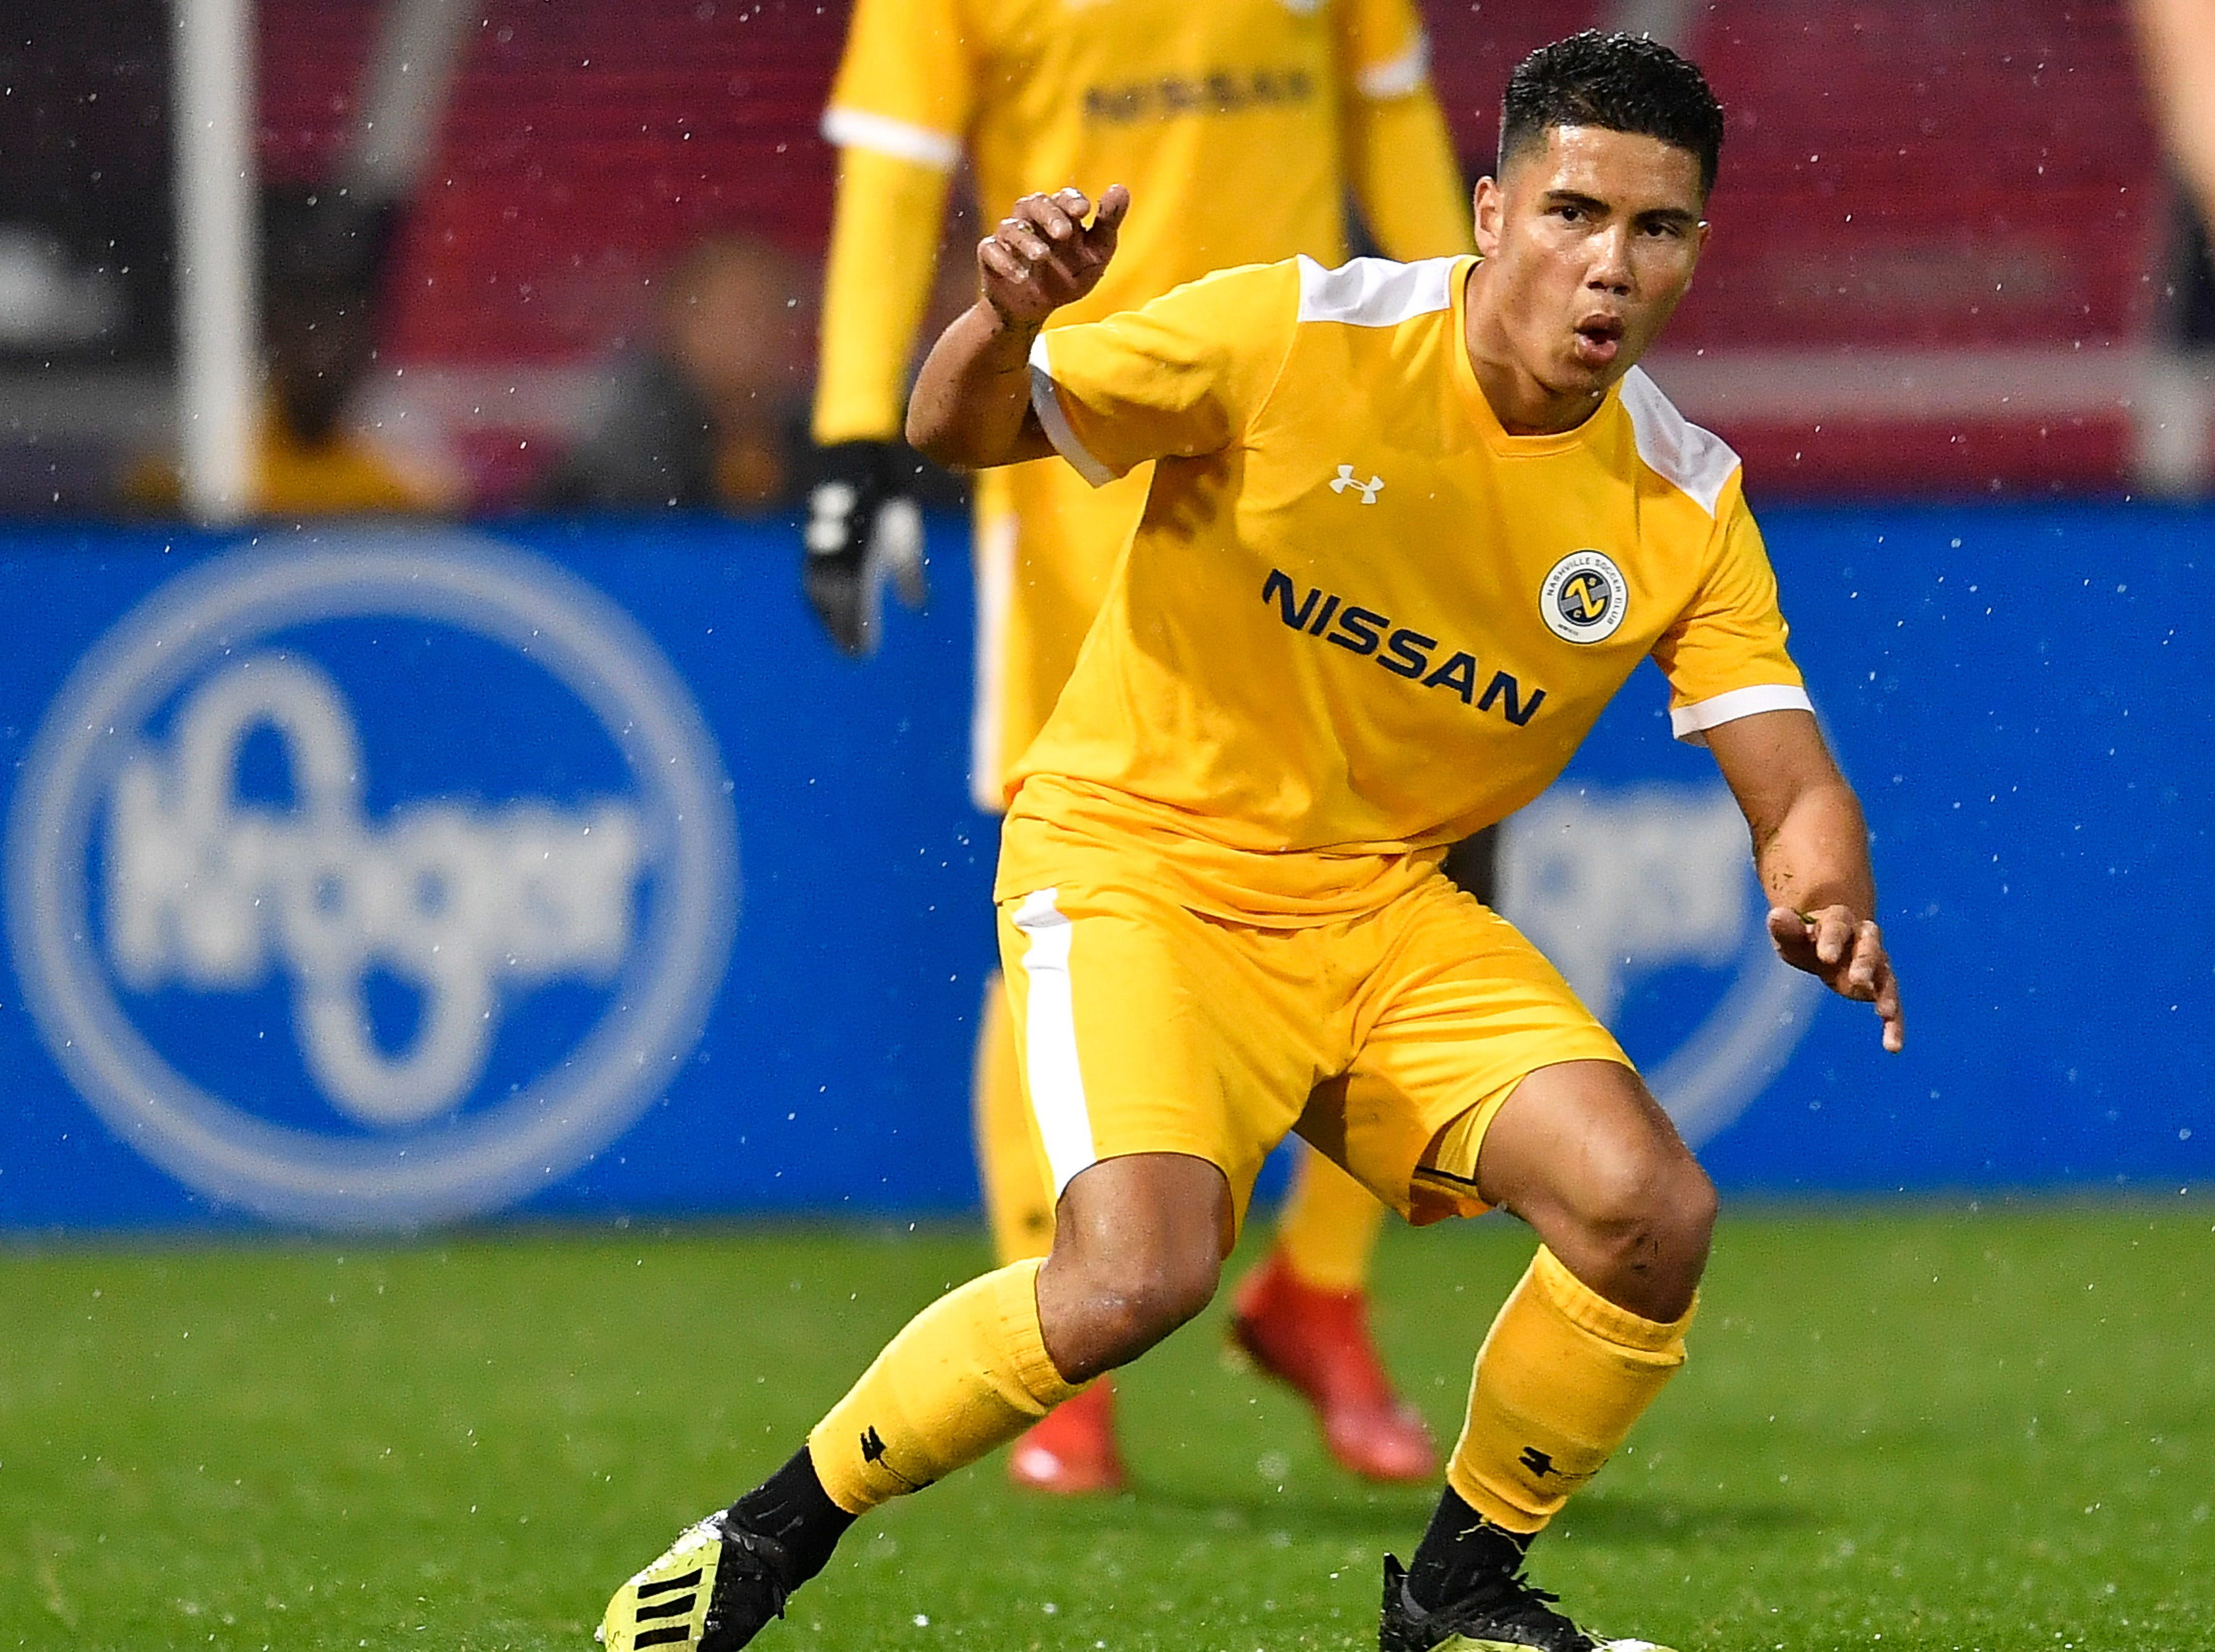 Nashville SC forward Vinnnie Vermeer (8) reacts after missing a shot on goal during the second half against New York City FC at First Tennessee Park Friday, Feb. 22, 2019 in Nashville, Tenn.